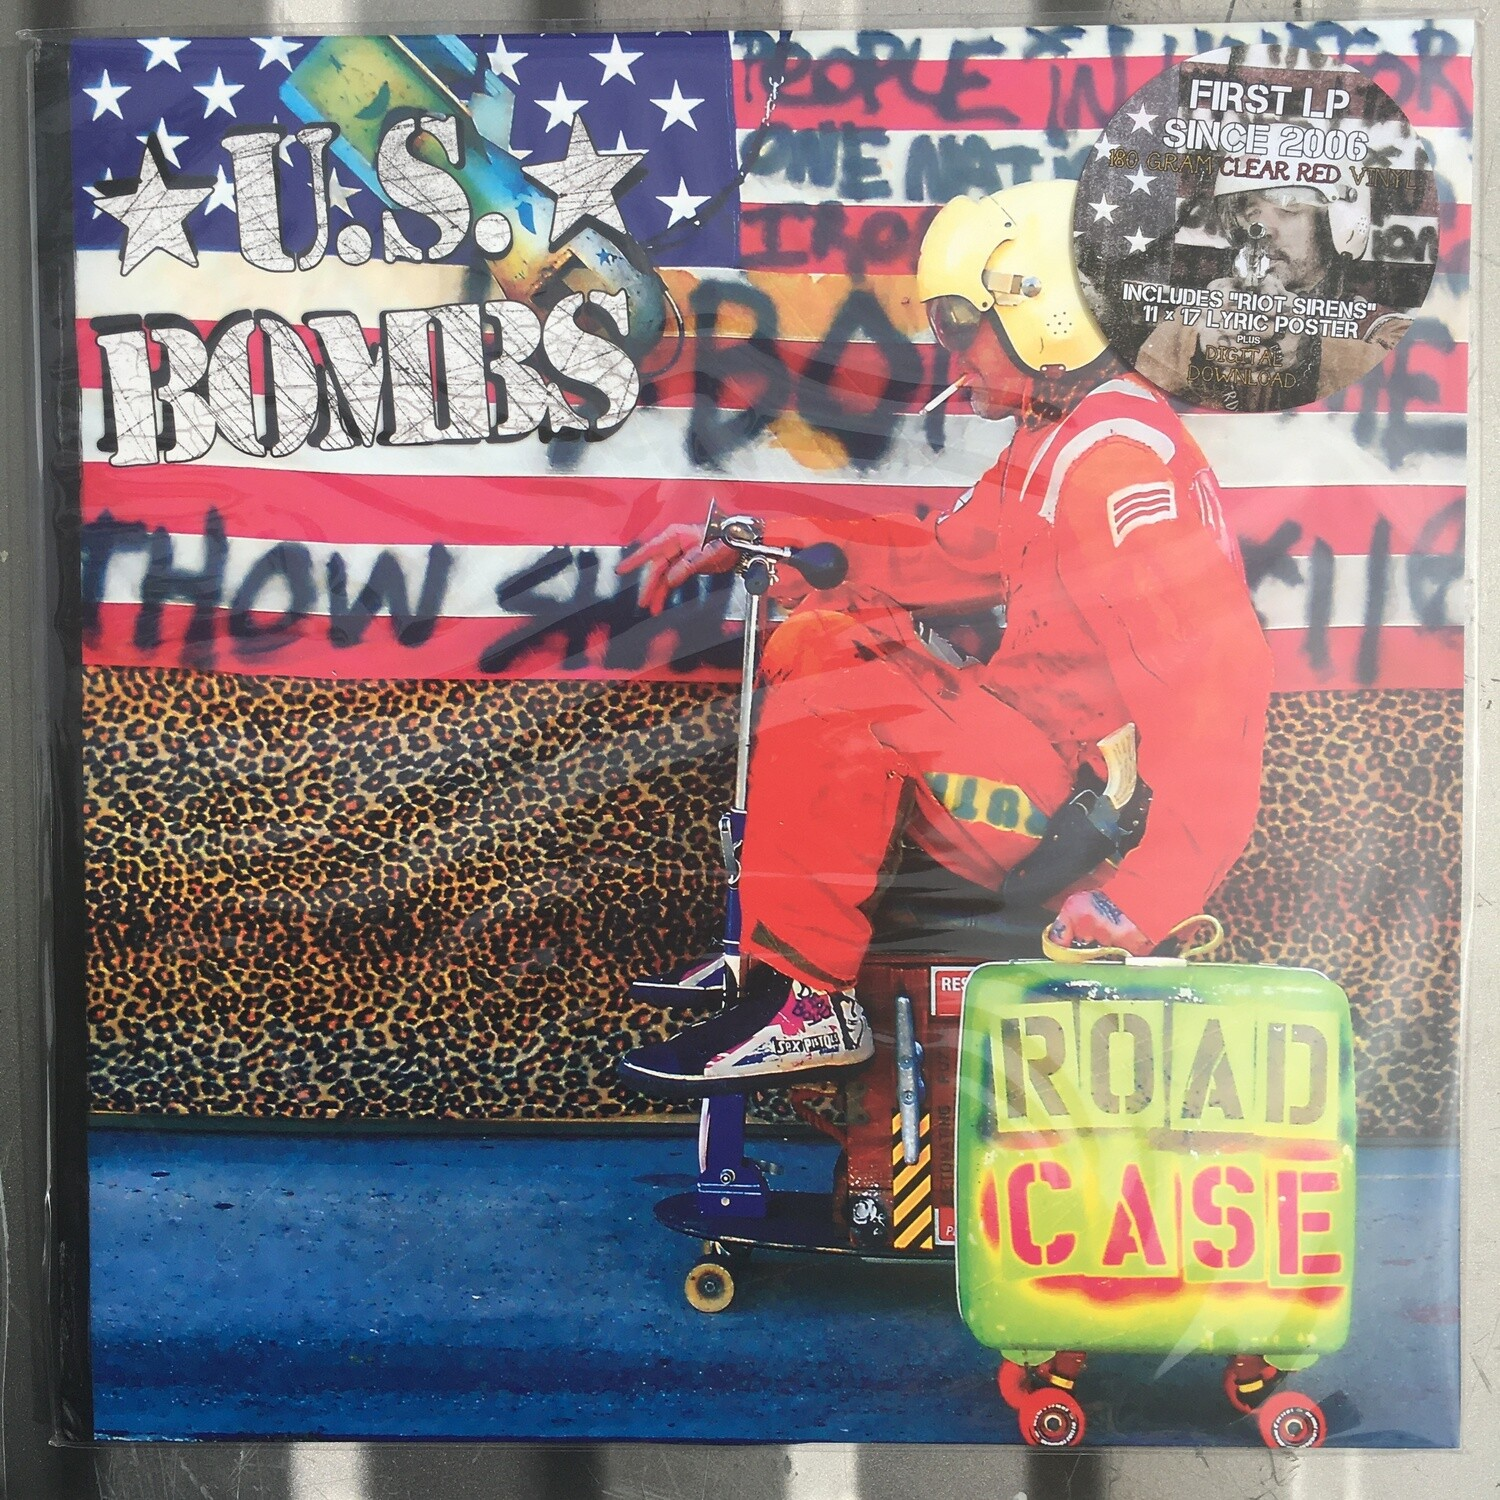 U.S. Bombs ~ Road Case ~ (NEW) Vinyl LP ~ Clear Red Colored Vinyl